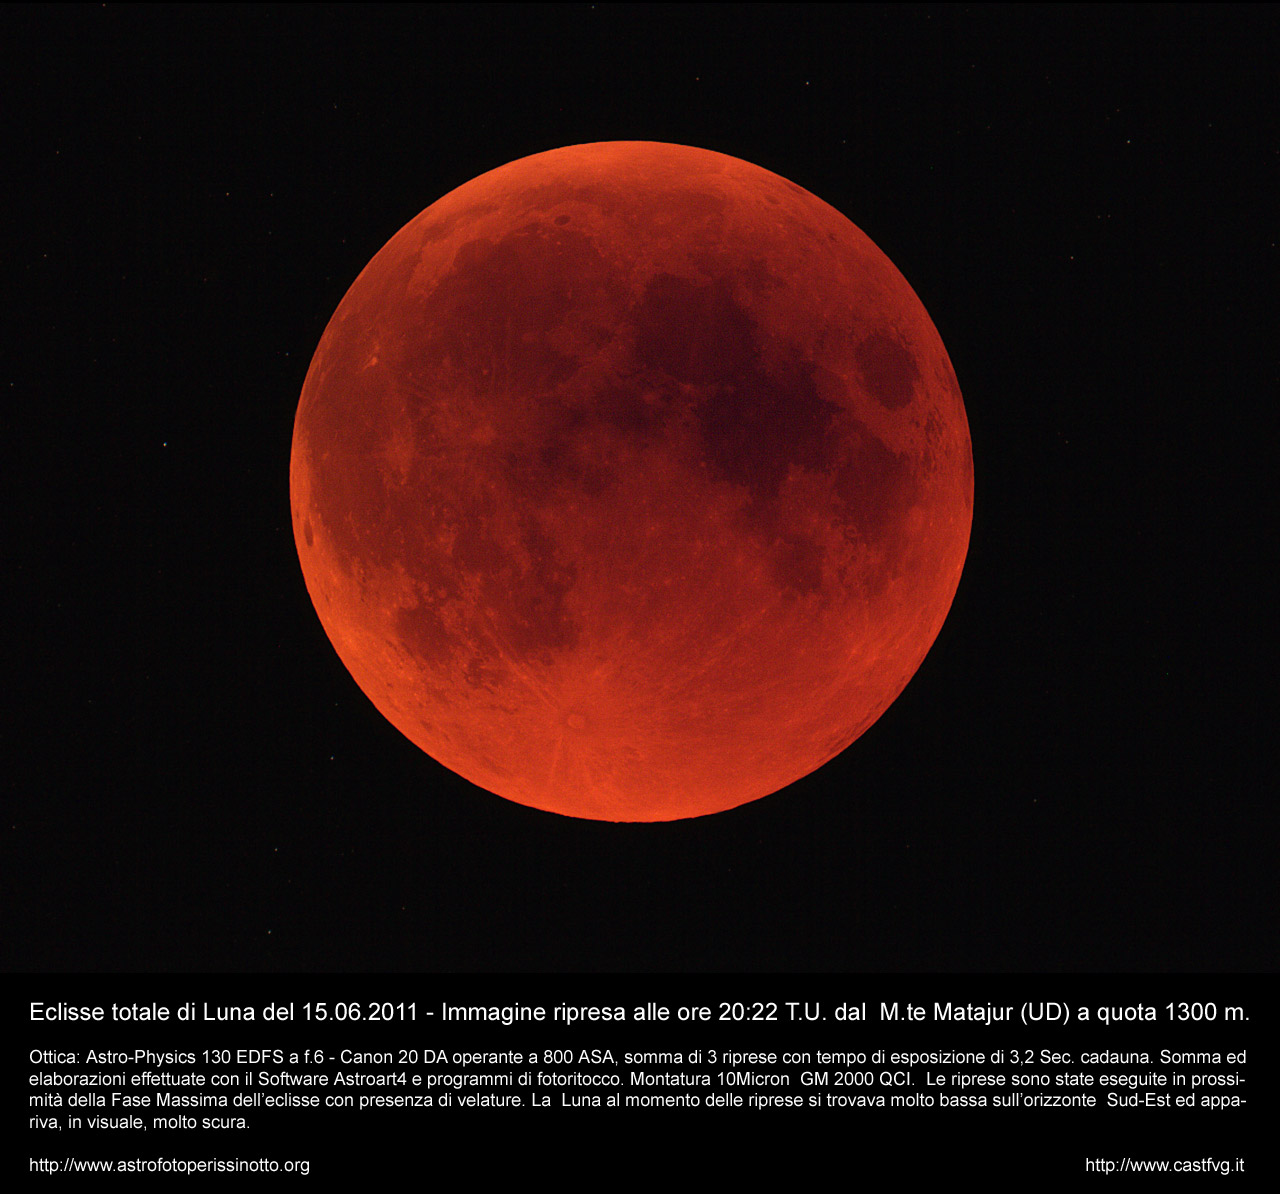 Total Moon eclipse photographed from Mount Matajur by Enrico Perissinotto: 256 KB